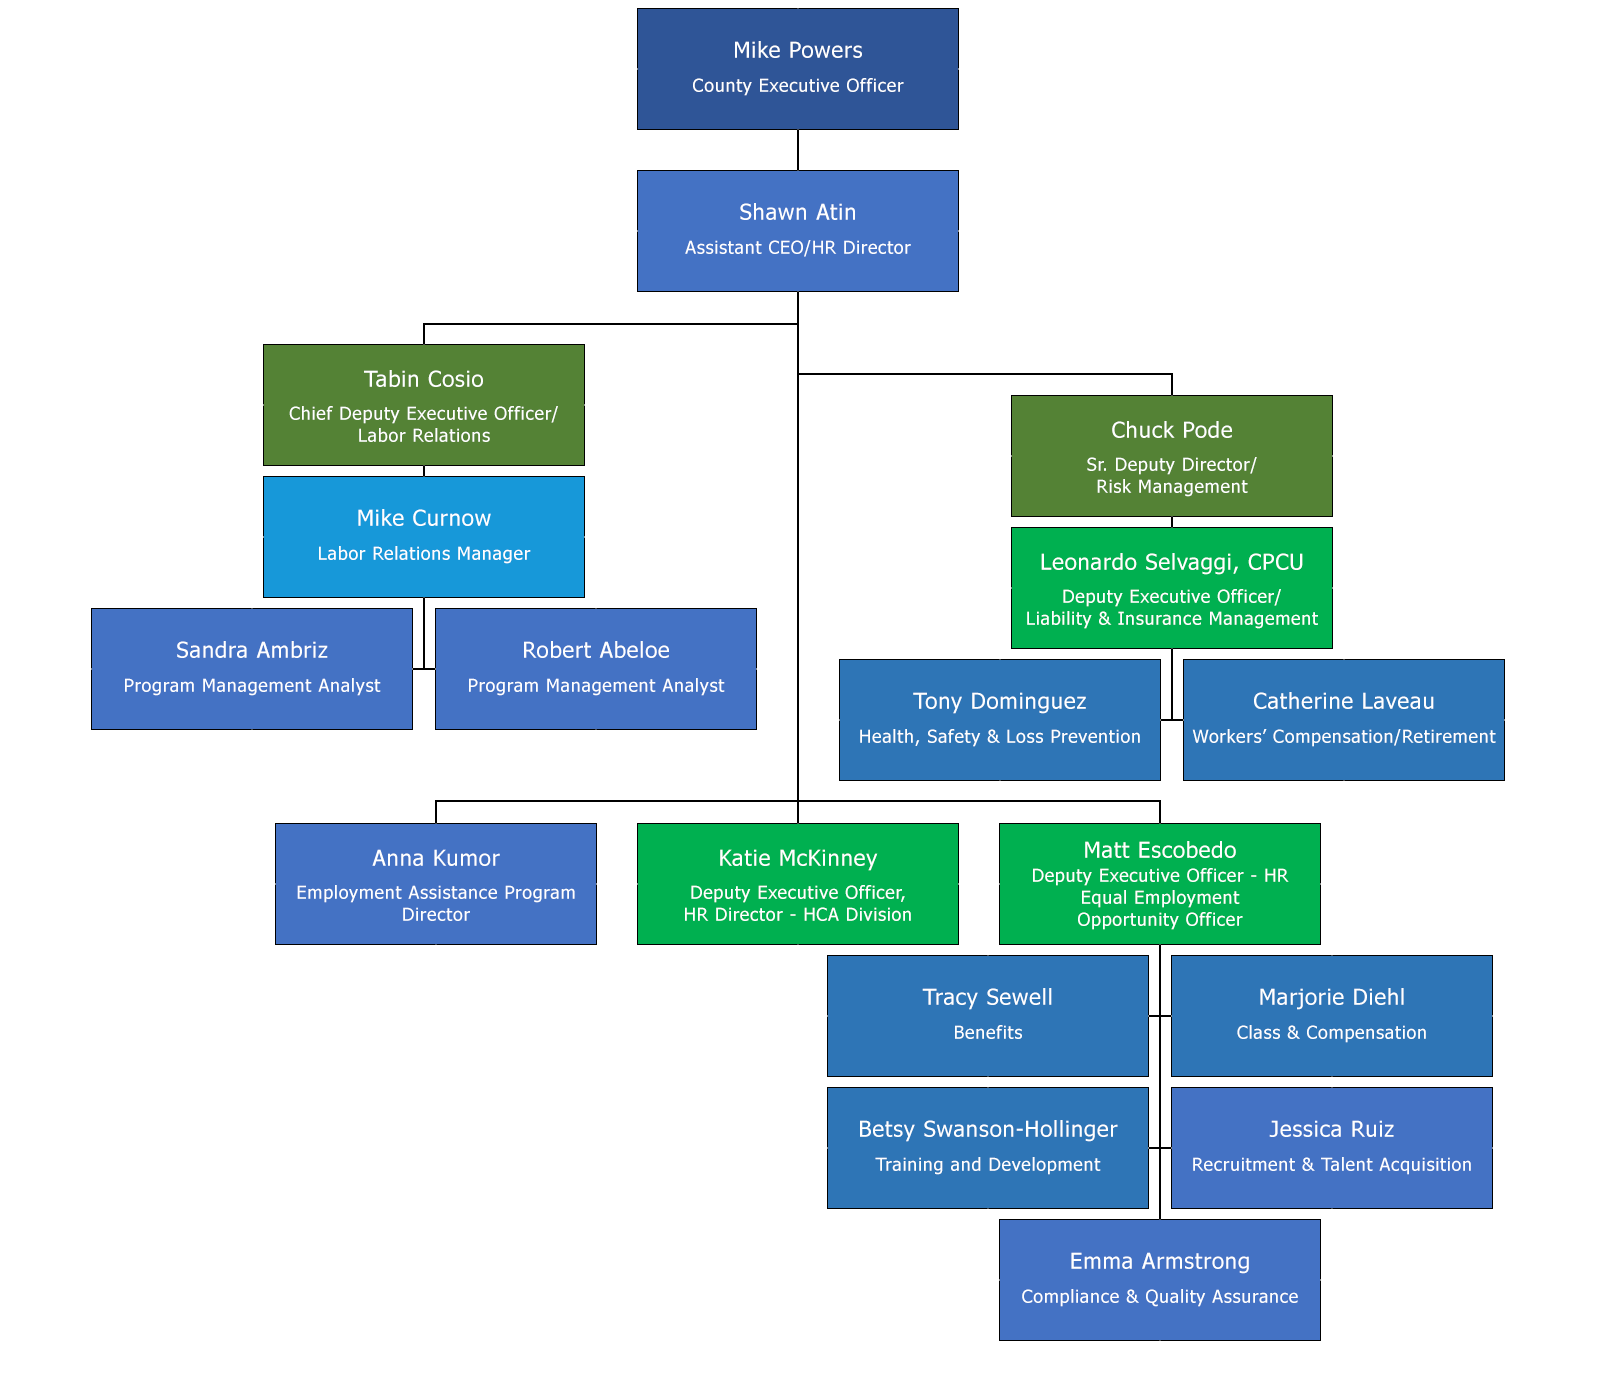 HR Organization Chart – Ventura County Human Resources